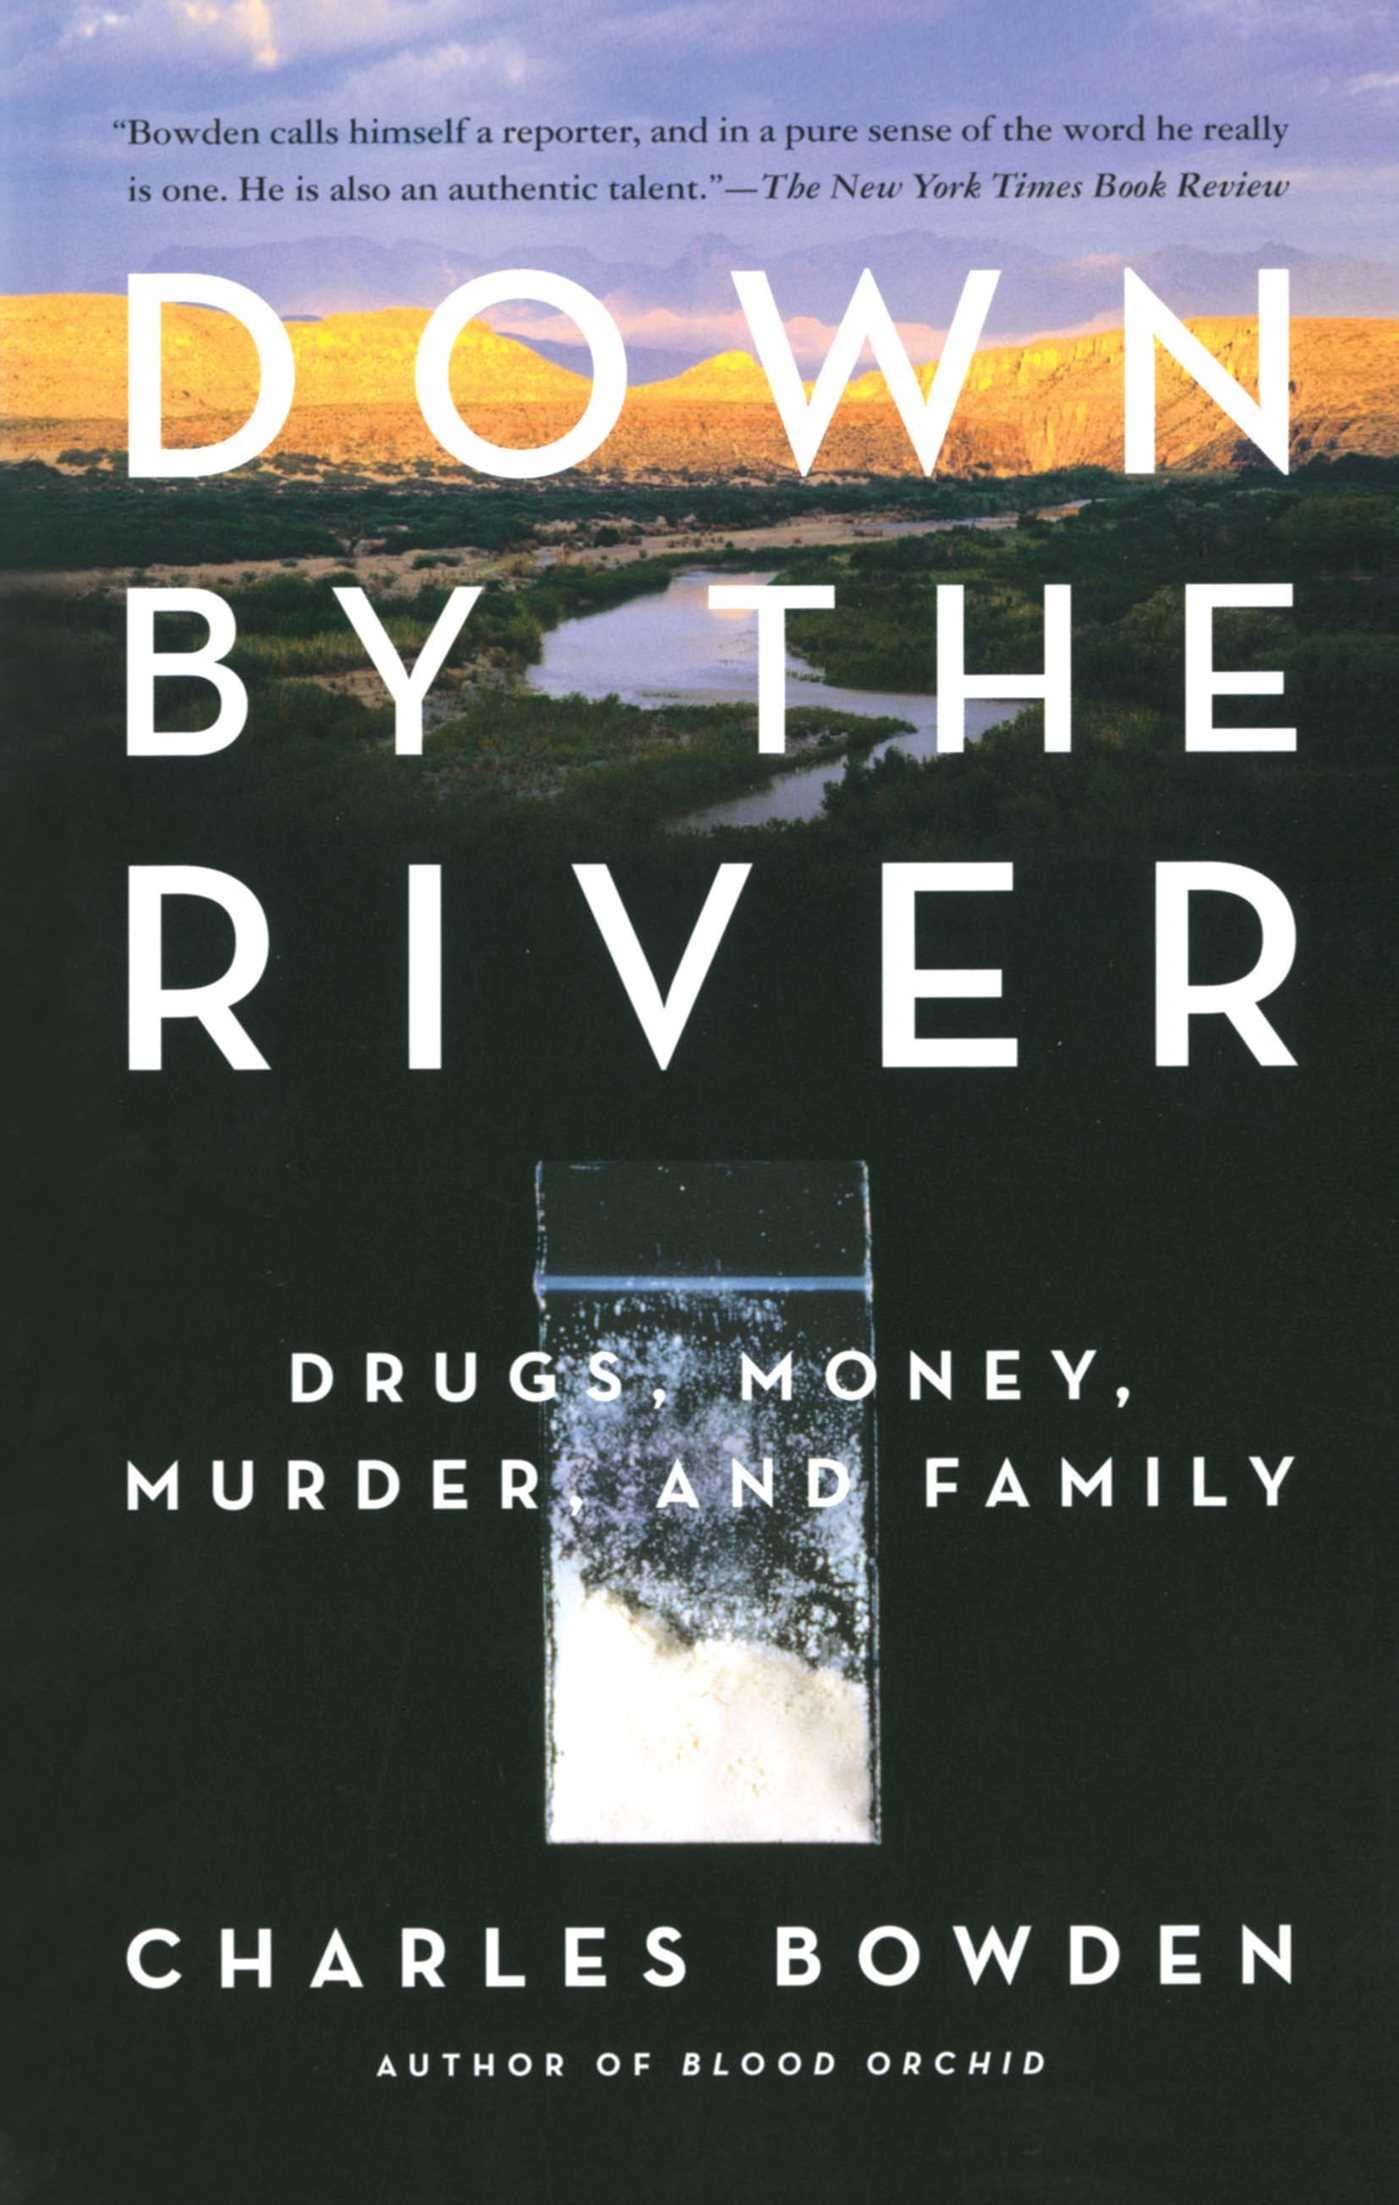 Down By The River: Drugs, Money, Murder, And Family: Charles Bowden:  9780743244572: Amazon: Books